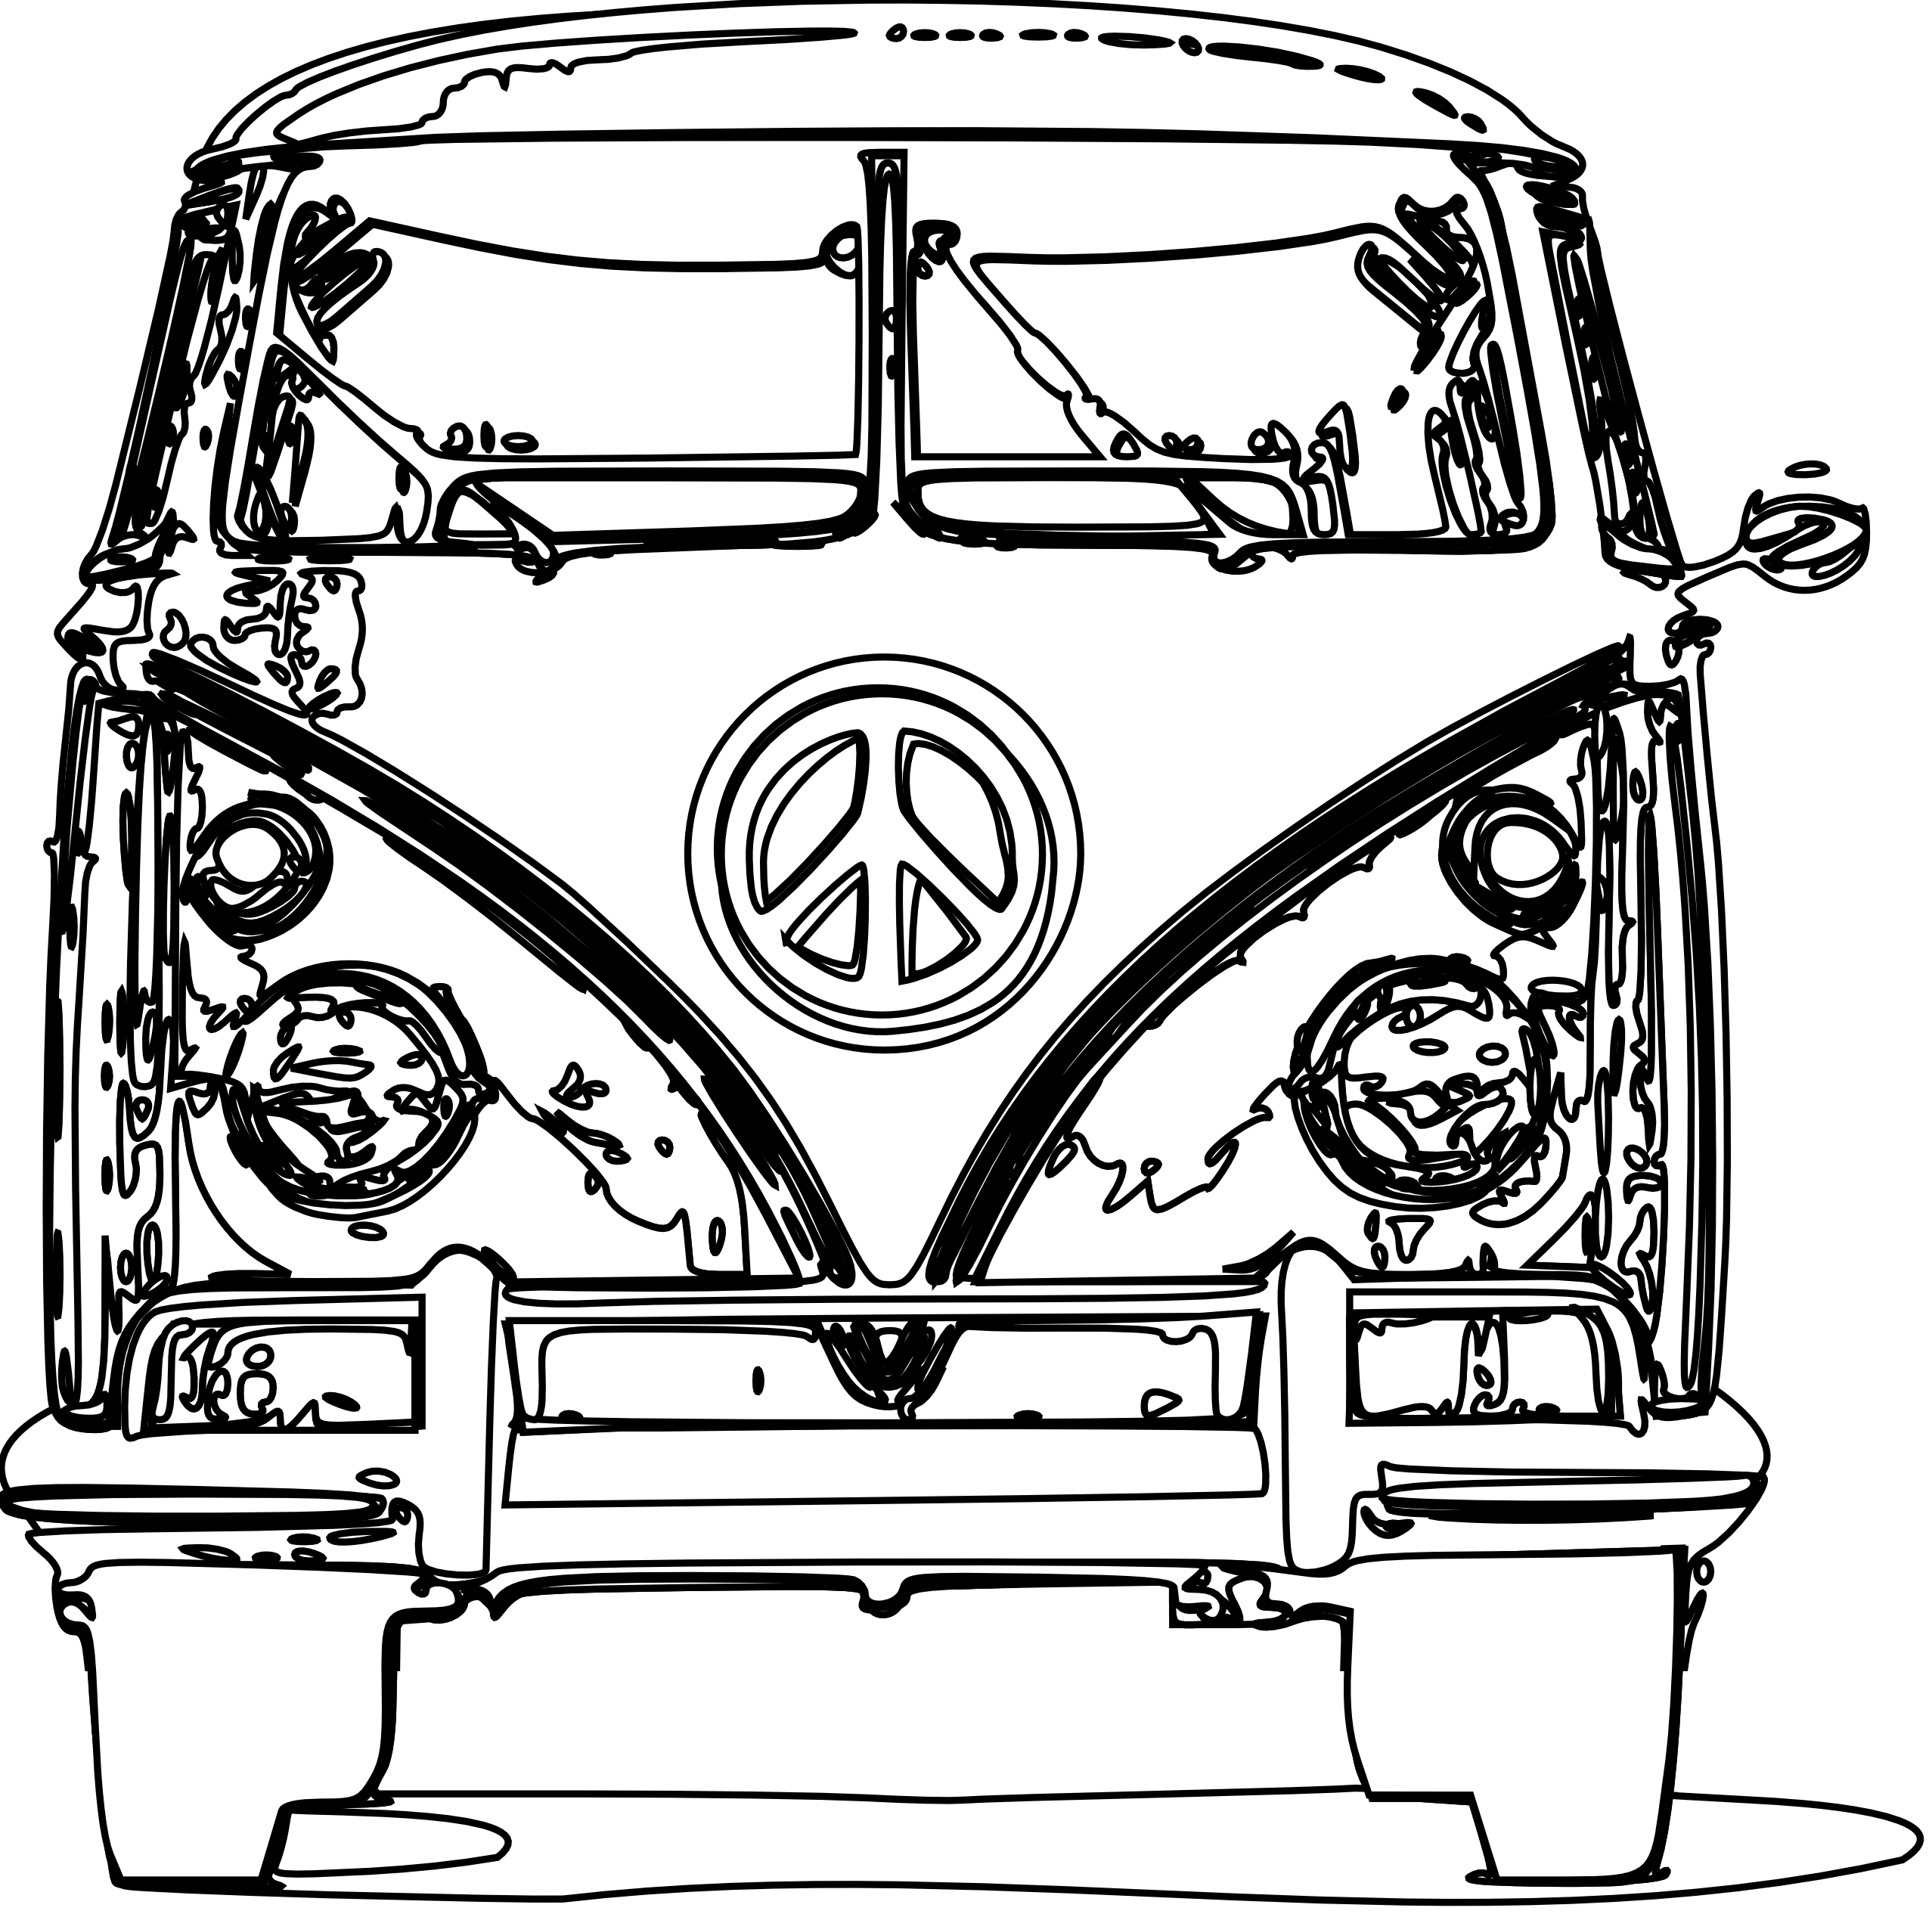 Volkswagon drawing front. Images for vw bus